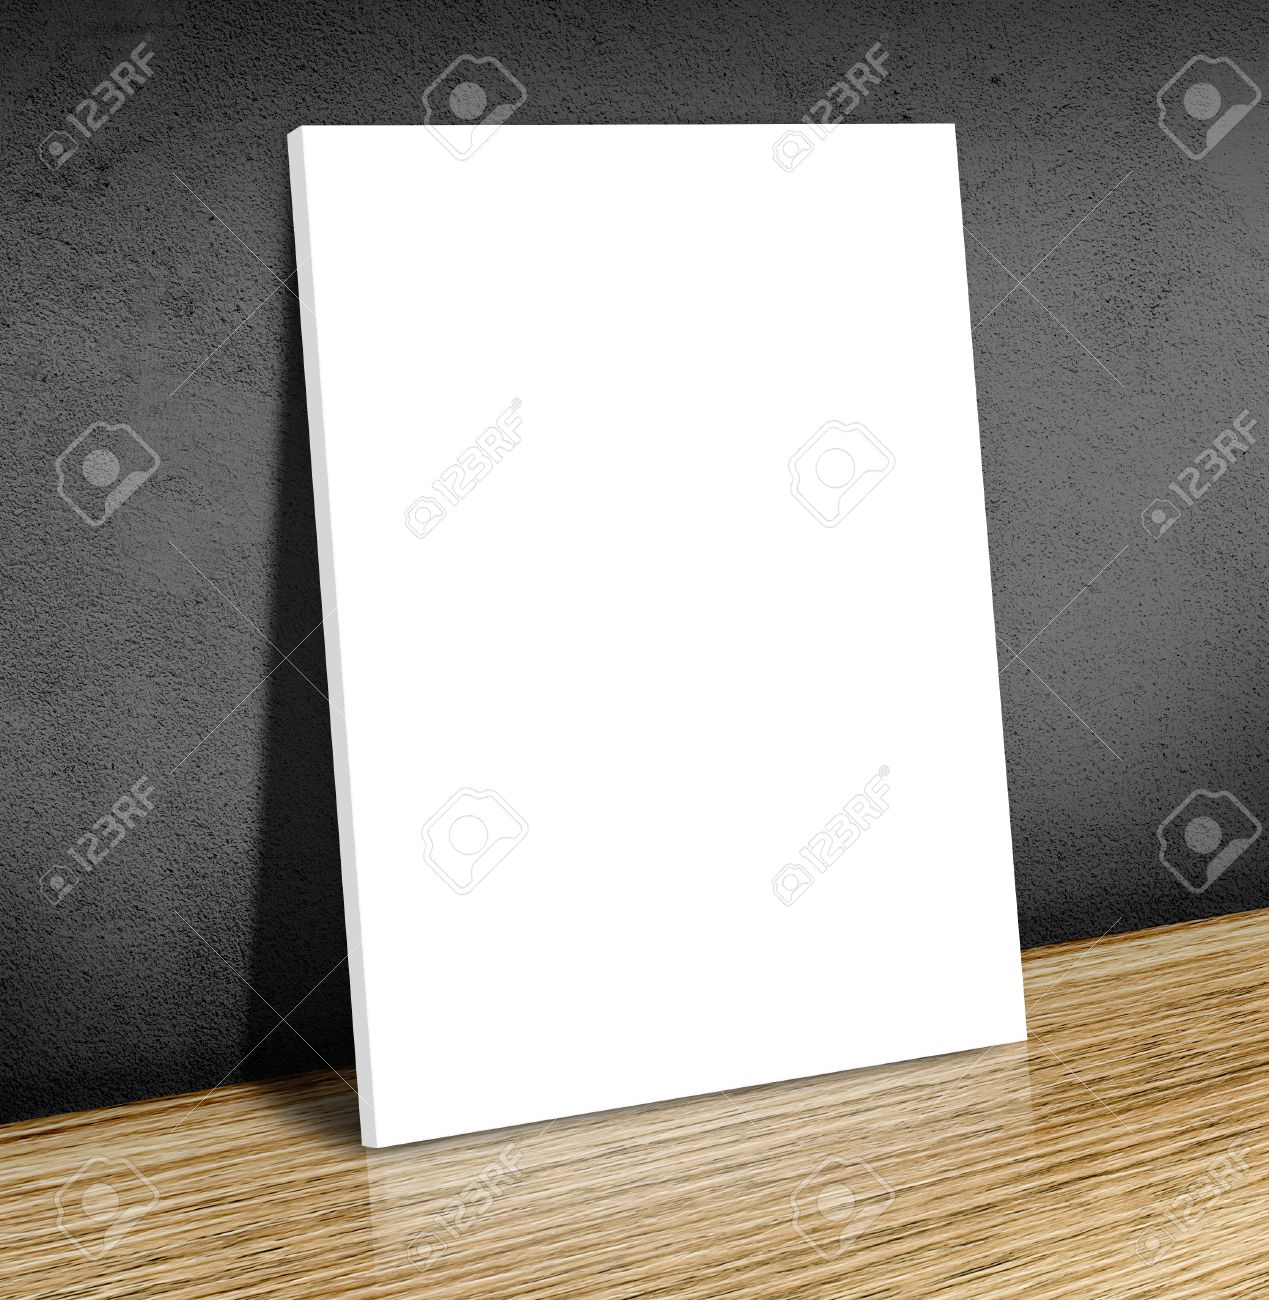 Blank White Poster Frame At Wooden Floor And Black Concrete Wall ...